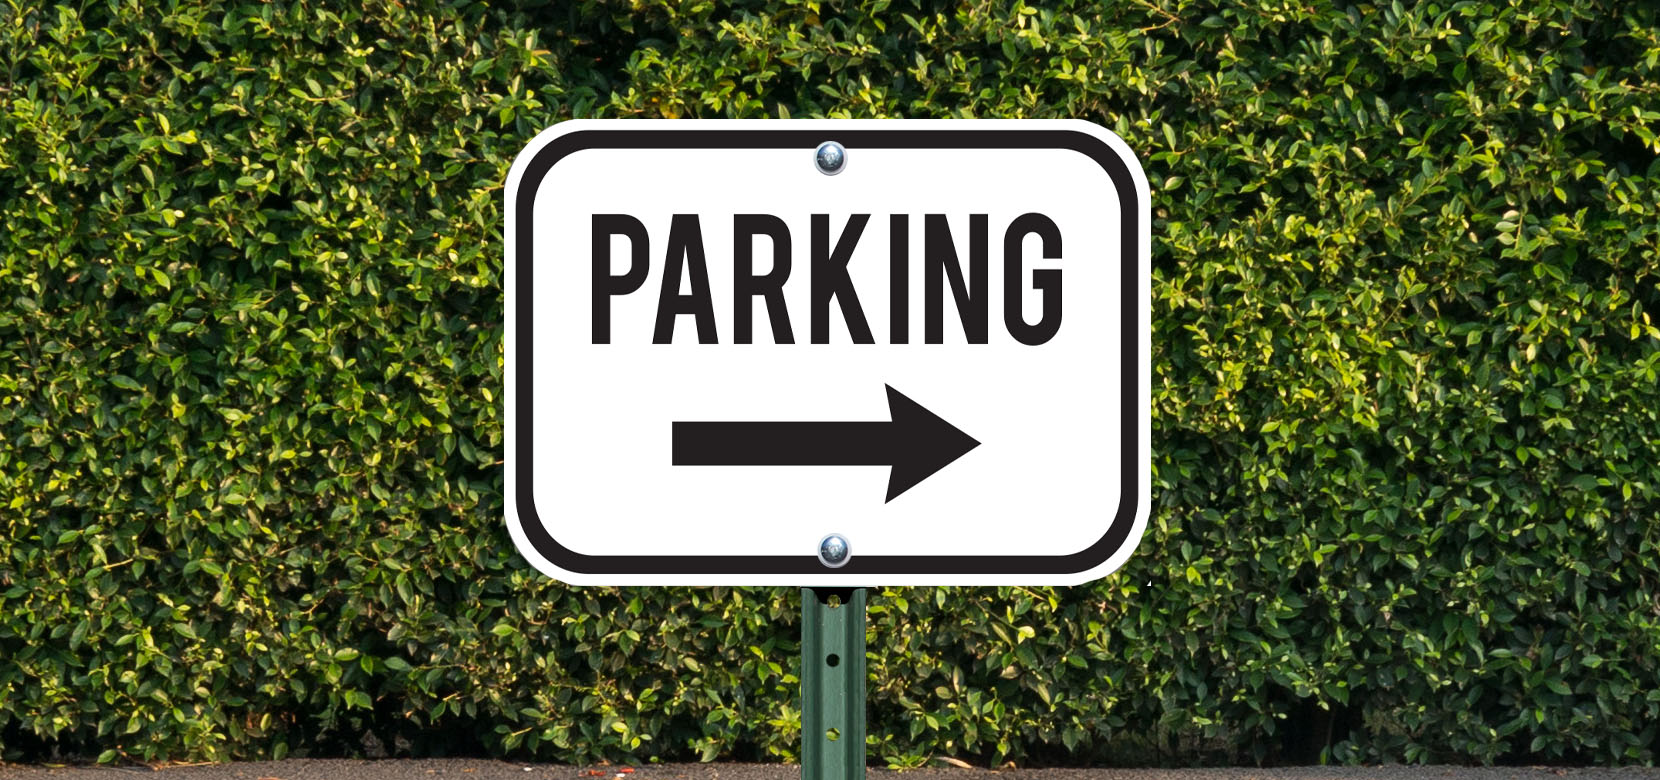 12 X18 Parking Signs 25 Off Aluminum Signs